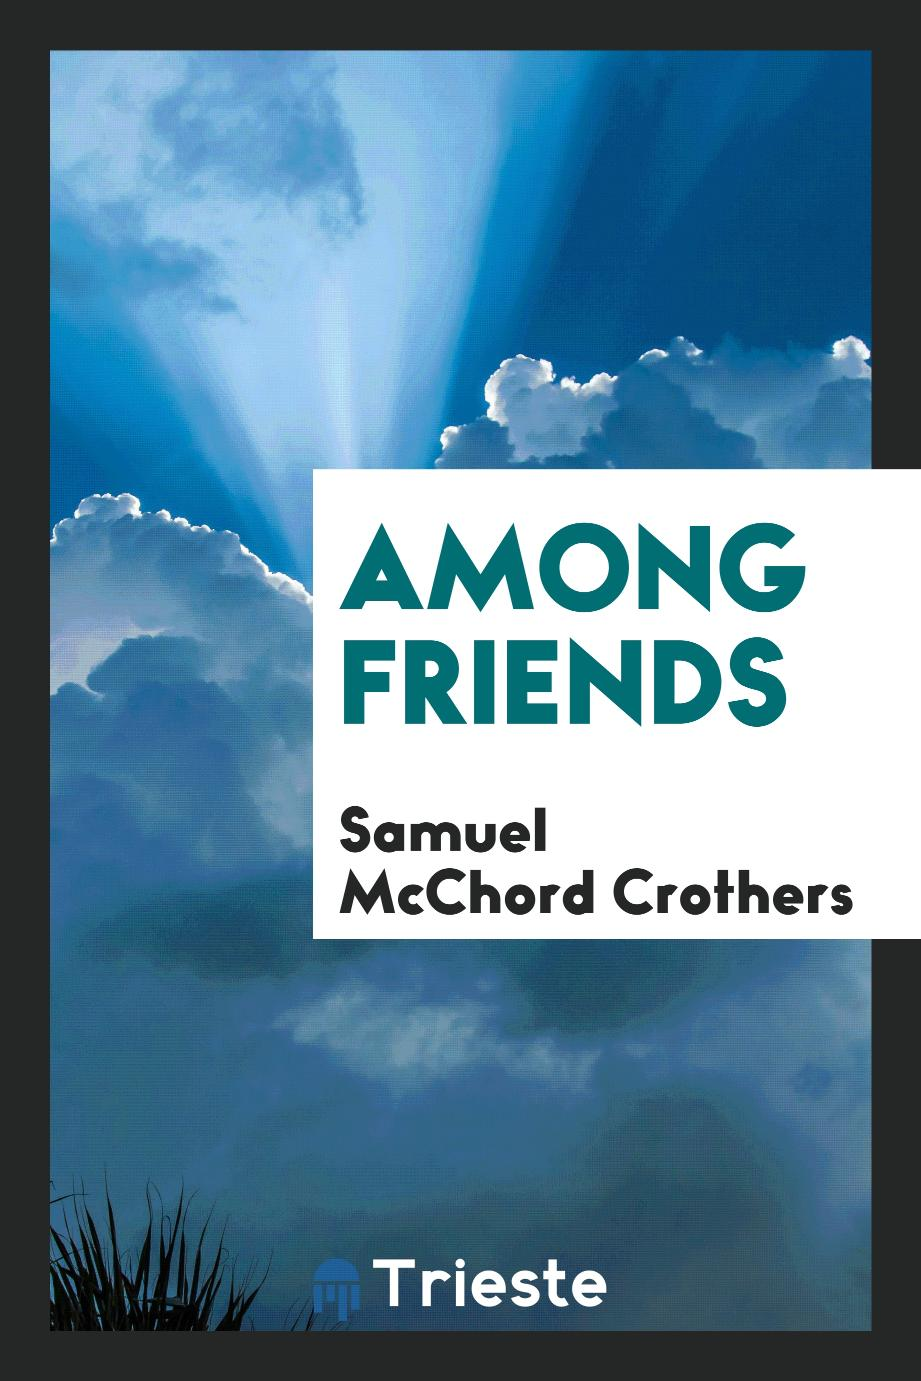 Samuel McChord Crothers - Among friends